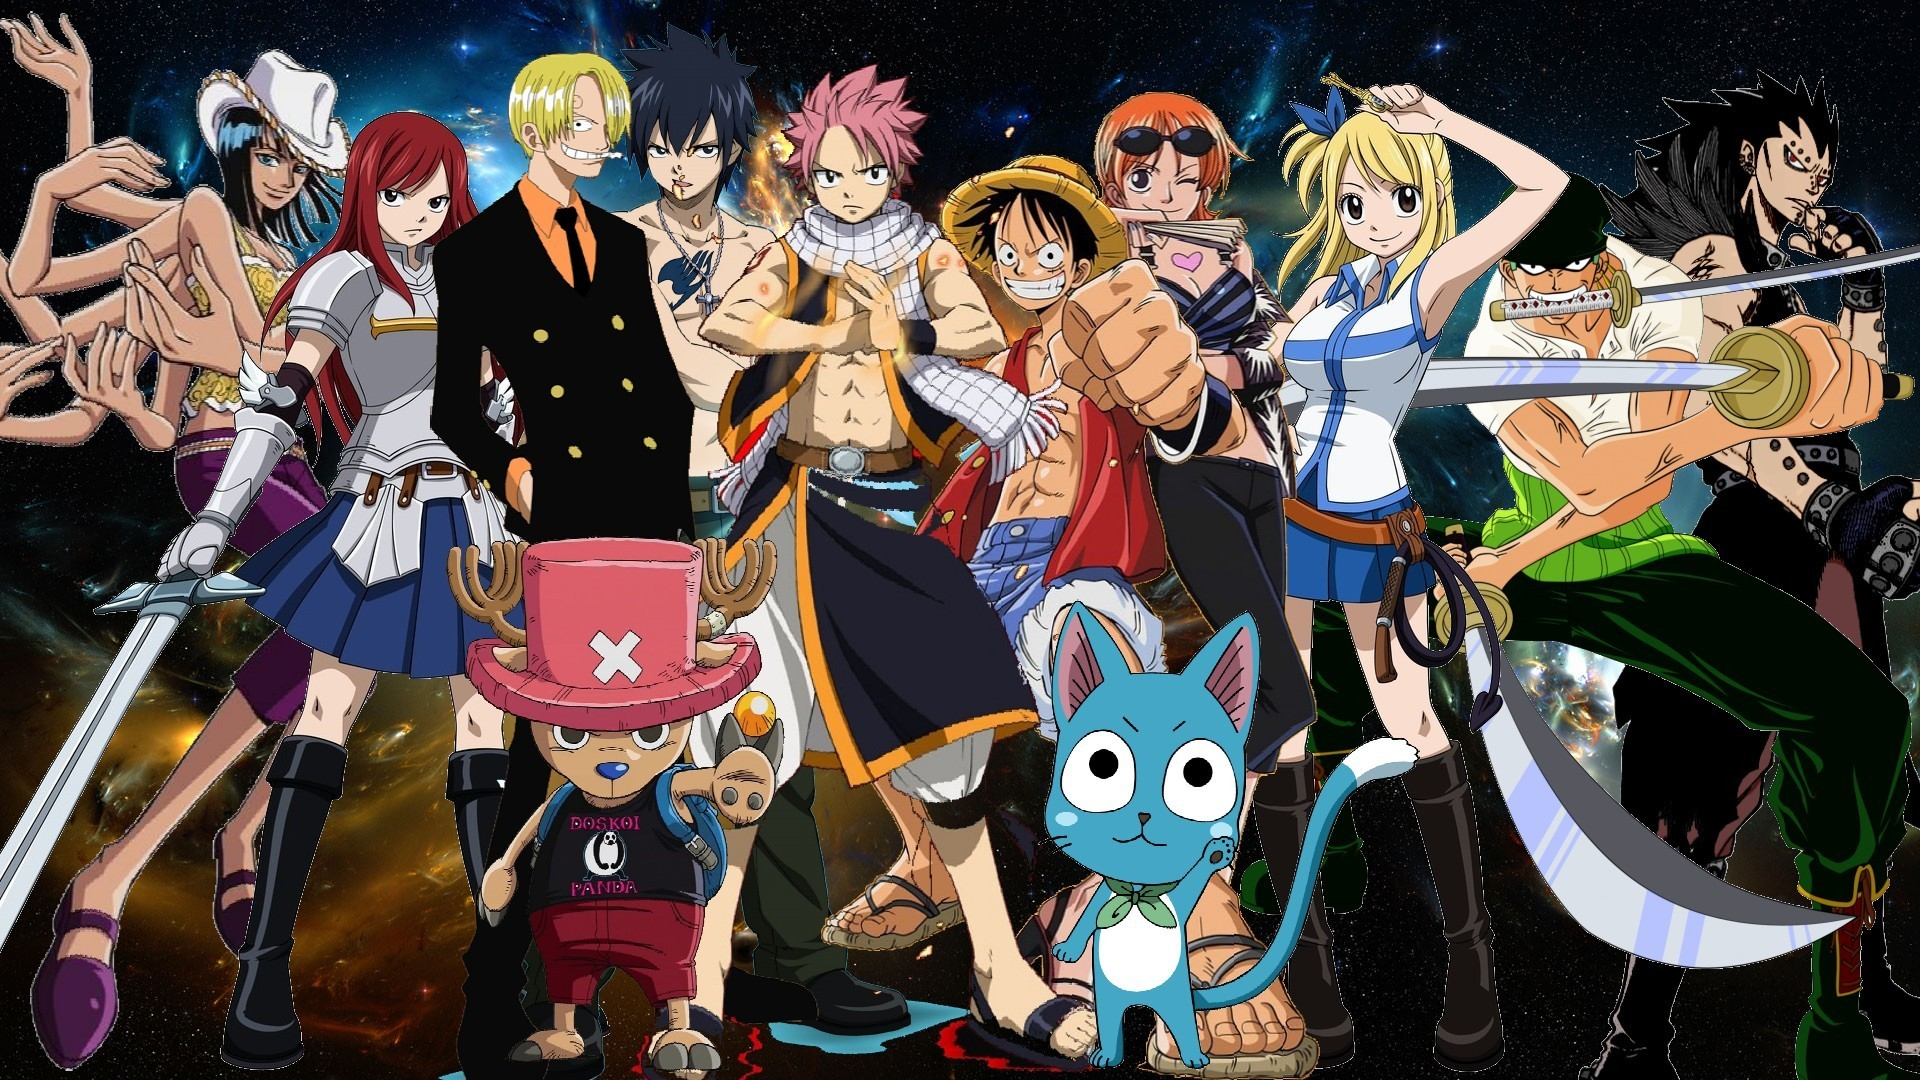 1920x1080 Fairy-Tail-Wallpaper-Windows-Manga-by-onepiece.tposter